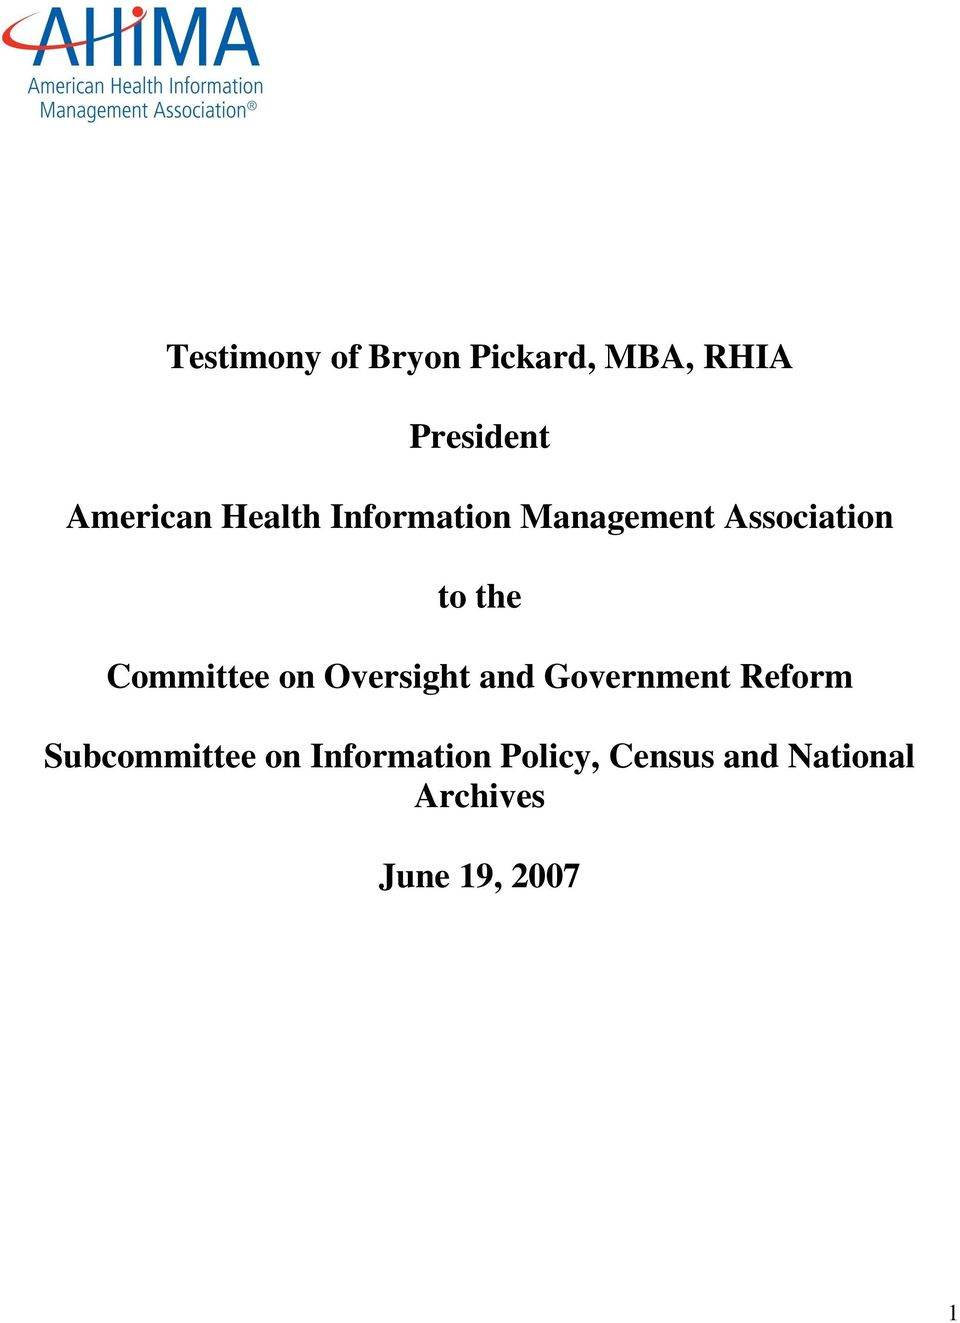 american health information management association An american health information management association certification is a required credential for some coding professionals working in hospitals, physician's offices, and medical clinics.